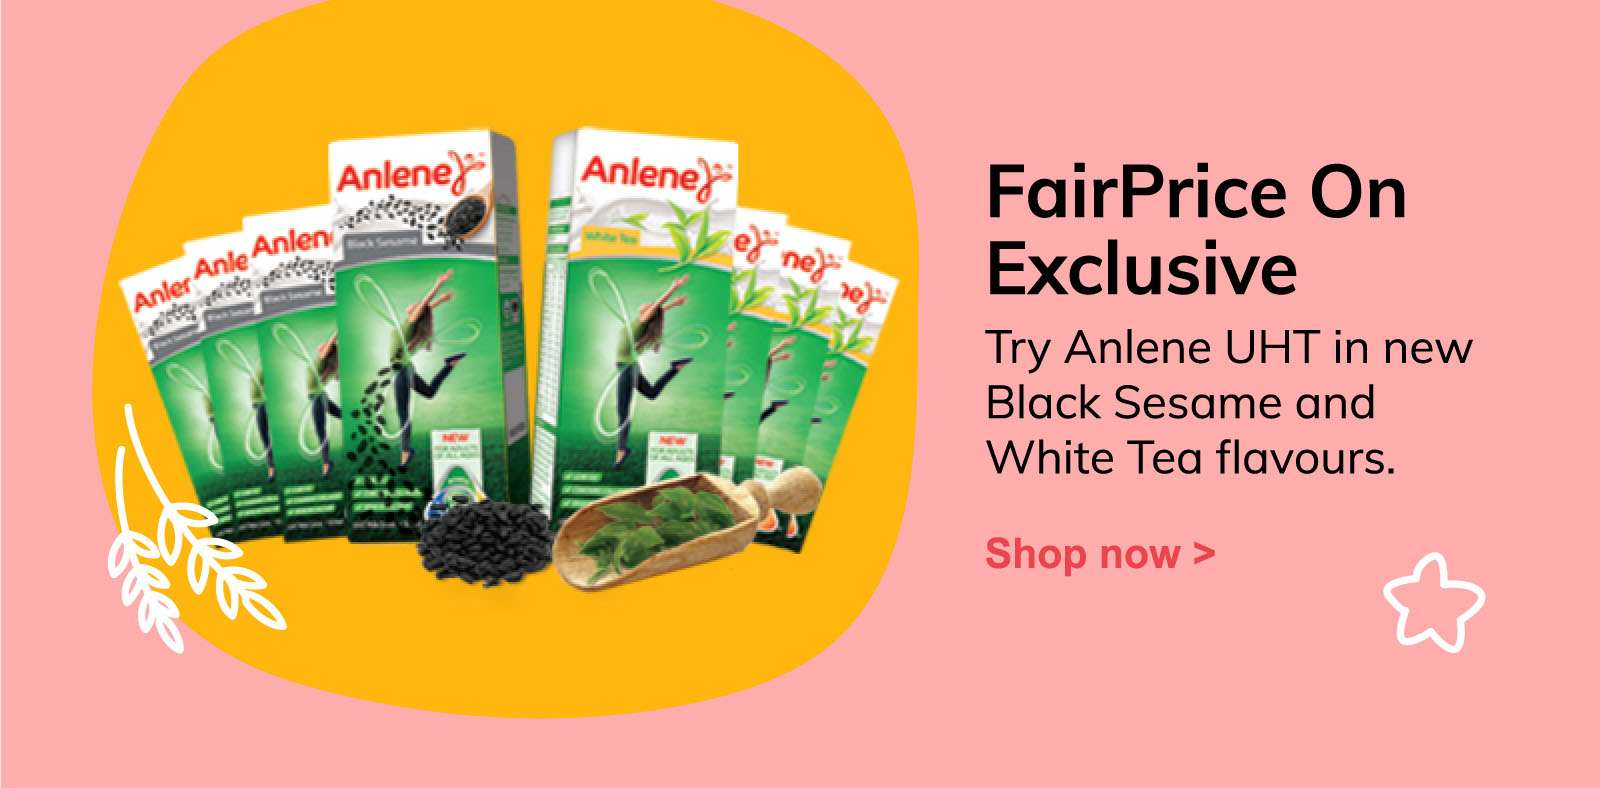 FairPrice On Exclusive